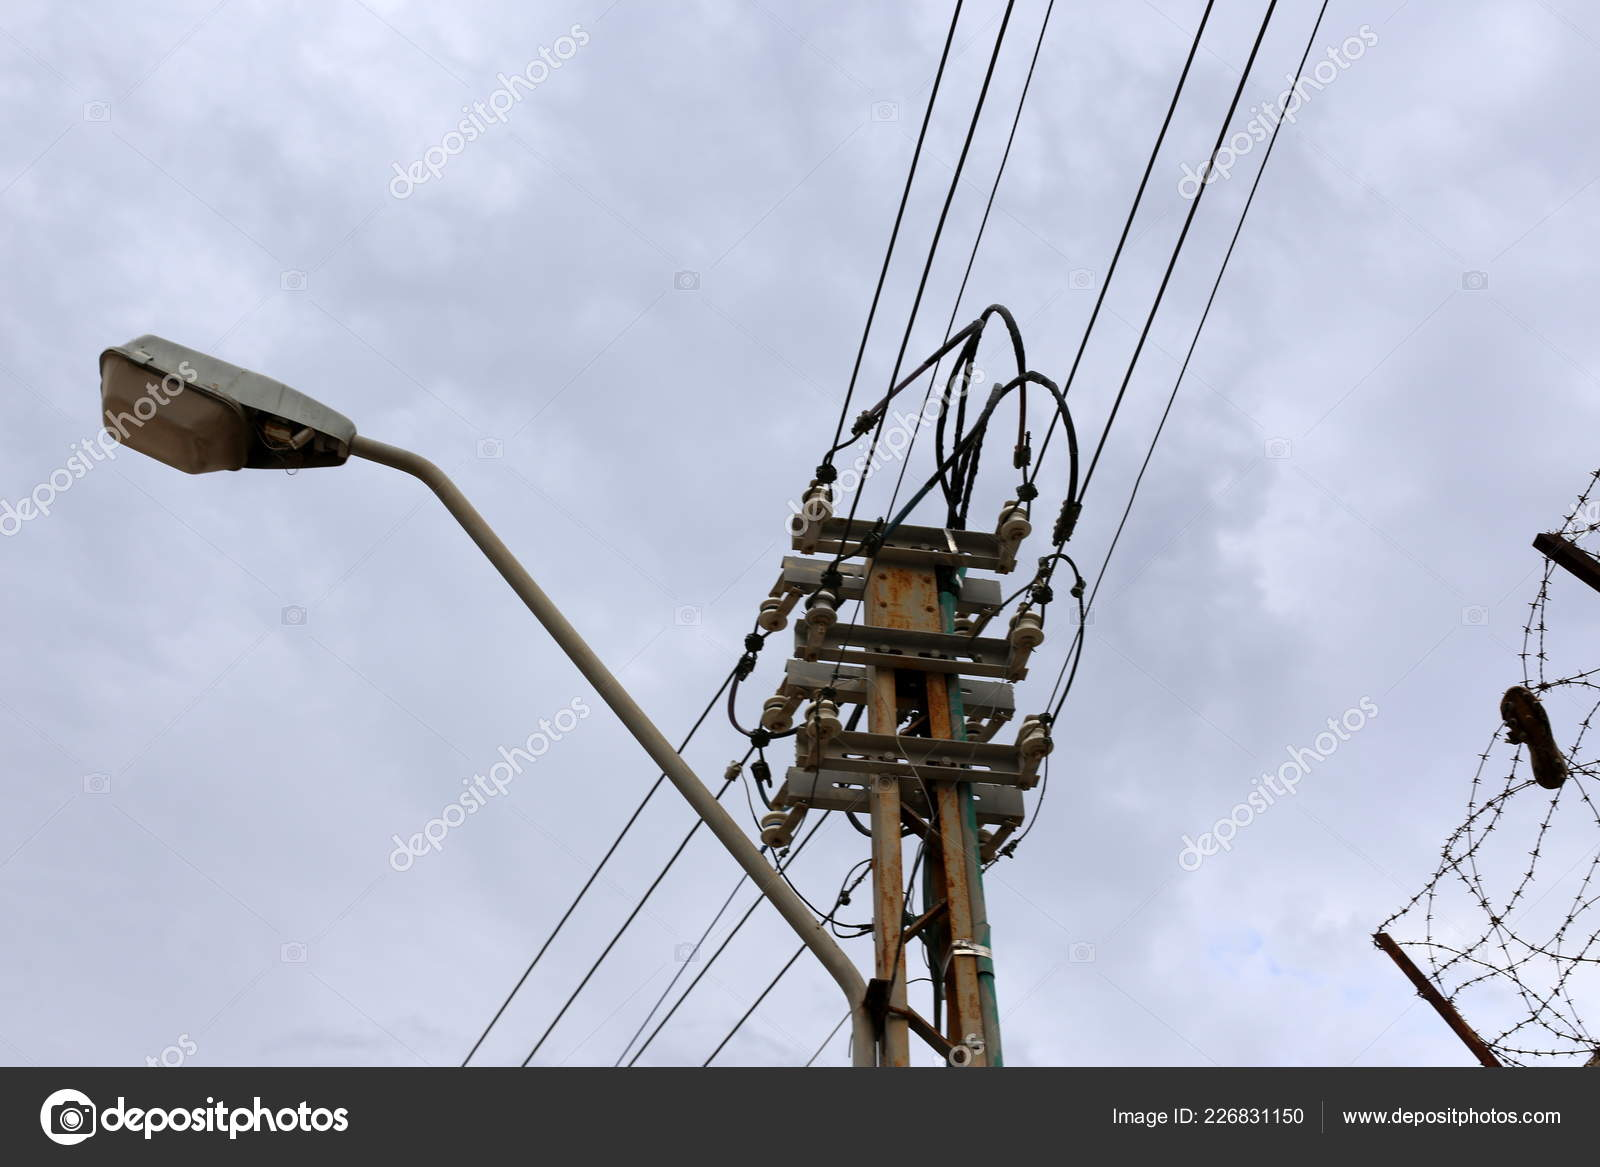 Astonishing Electrical Wires Support Which Electricity Stock Photo C Shimonbar Wiring Digital Resources Antuskbiperorg